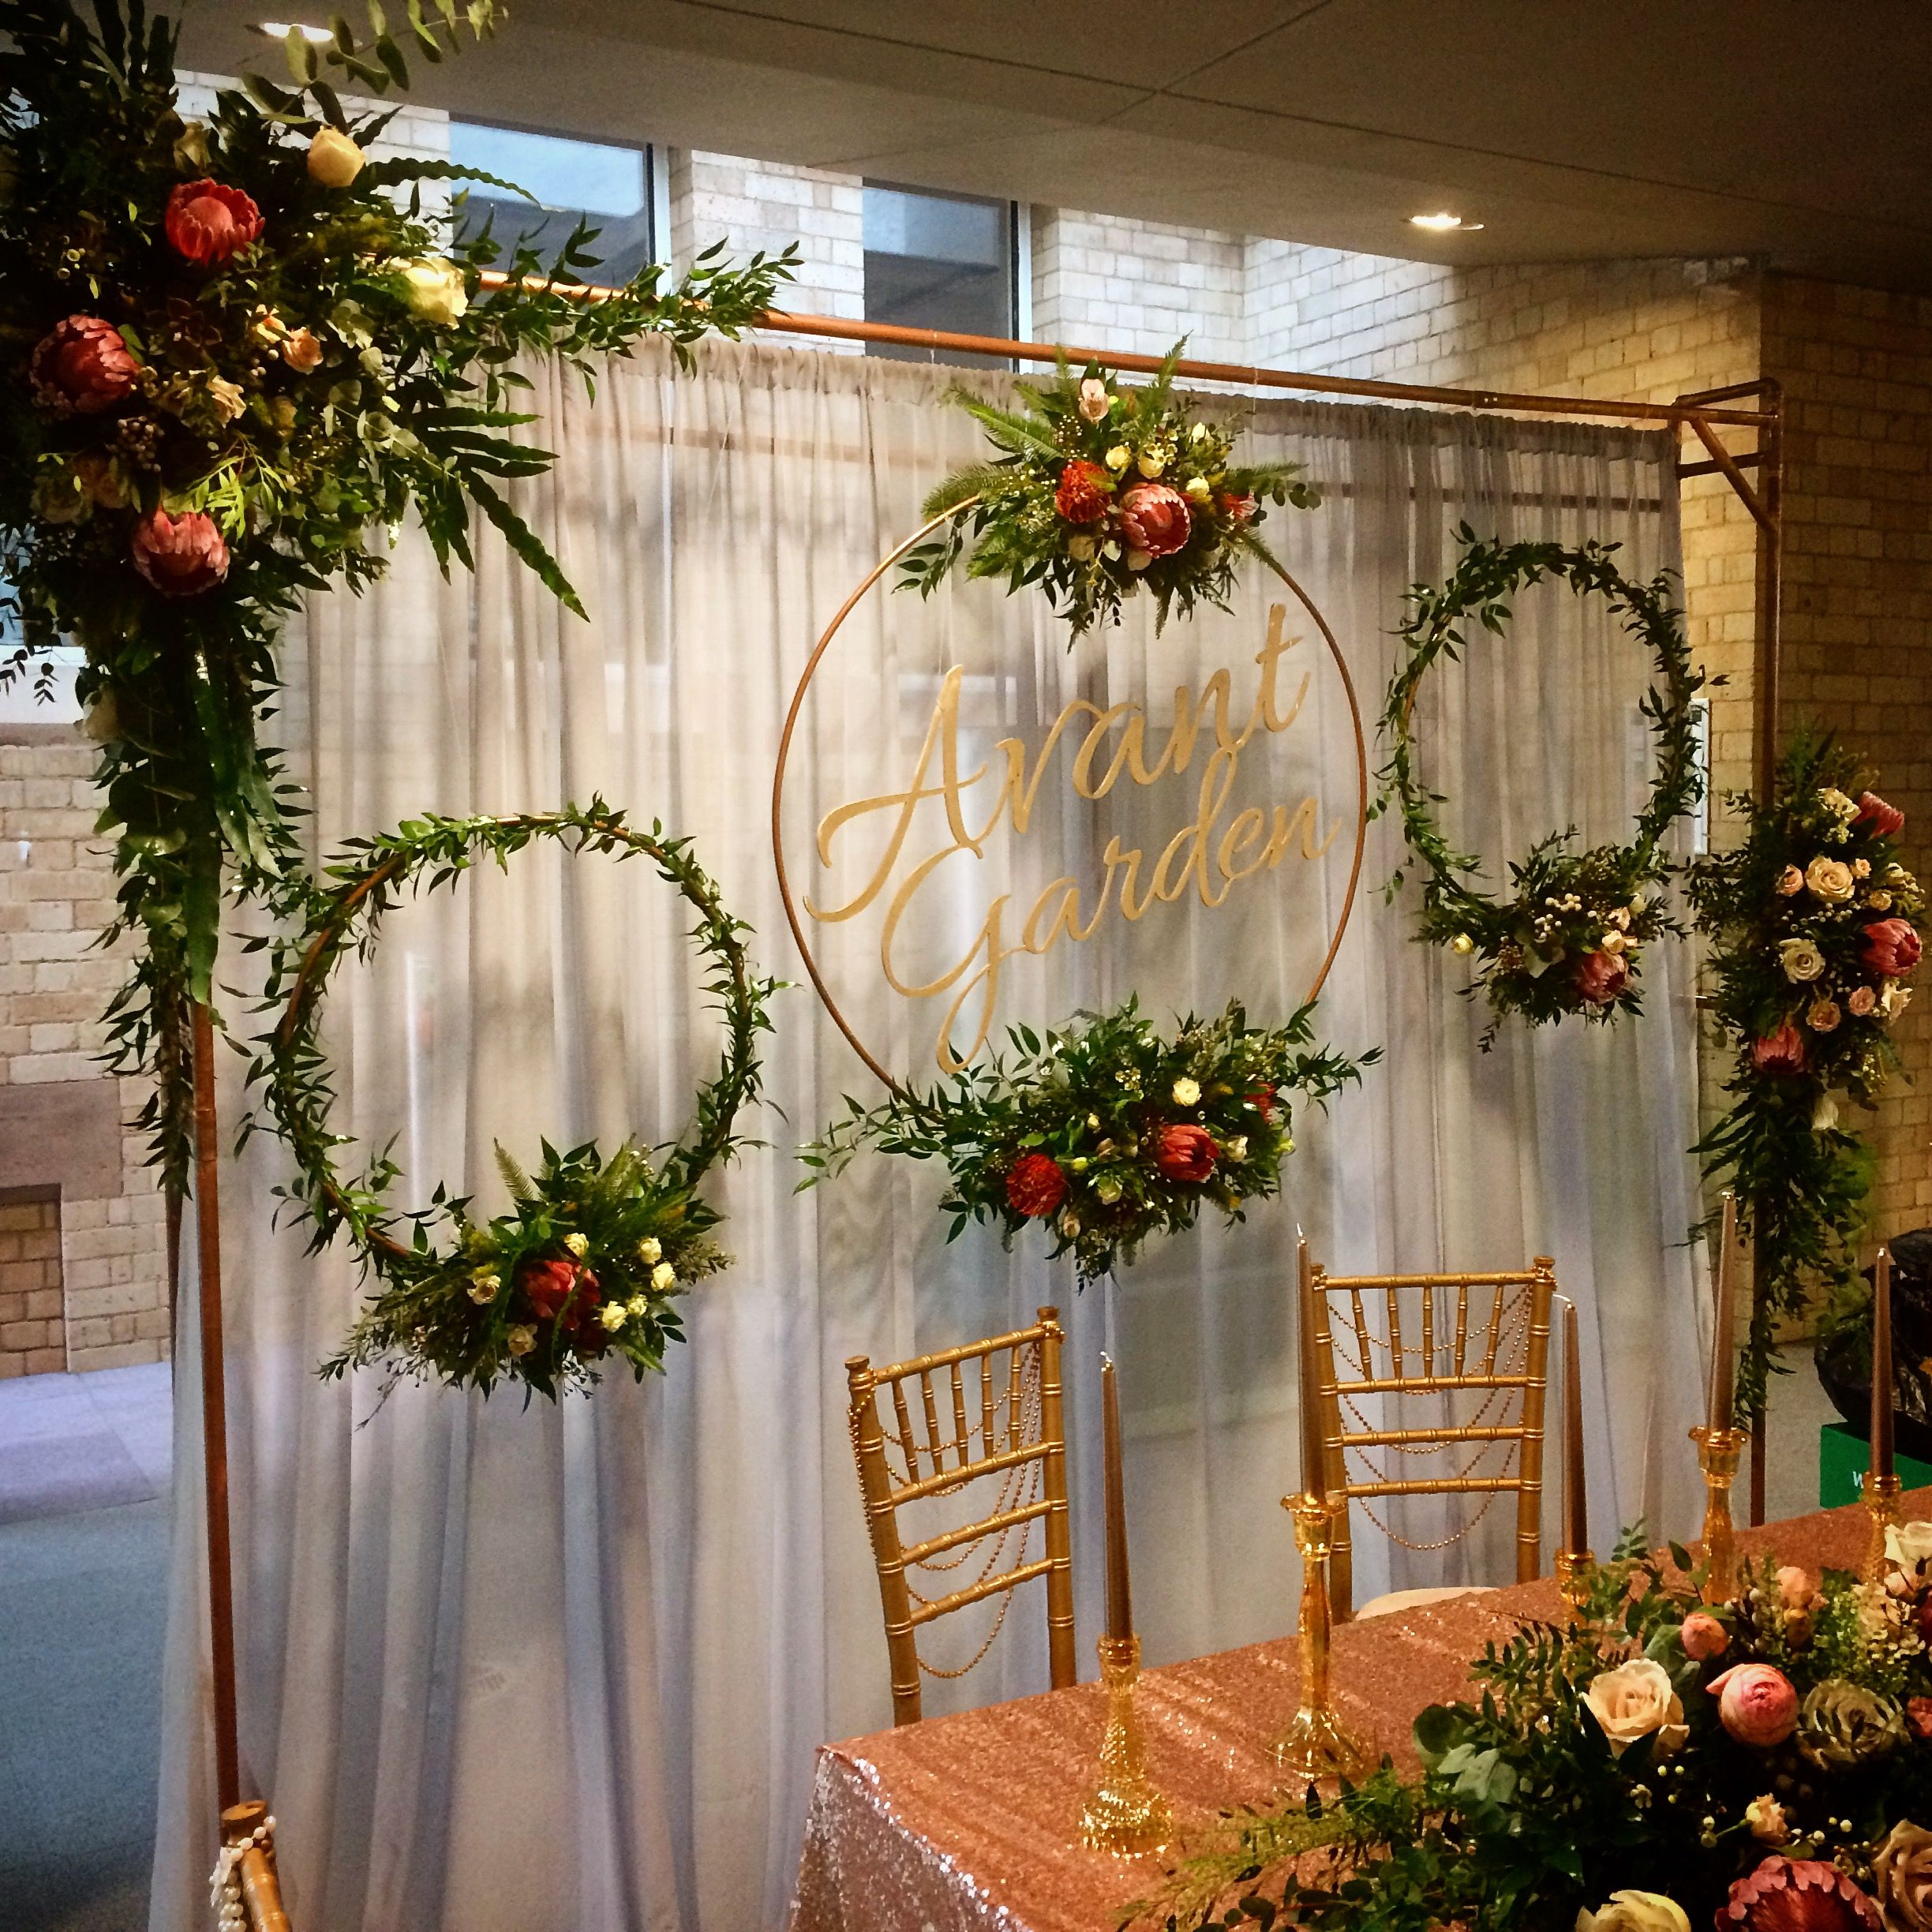 Garden wedding stage decoration  Hmm  Put another curtain rod in front of the sliding door curtains